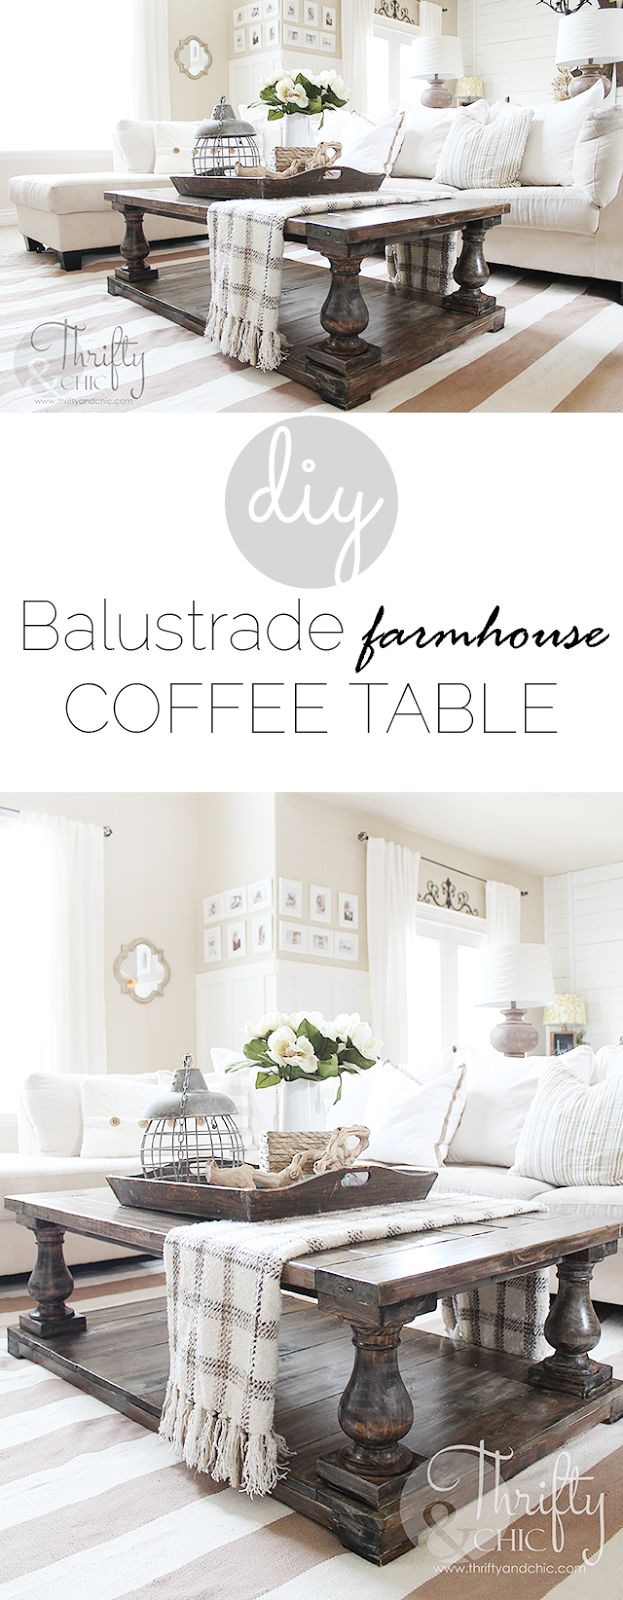 Diy home table decorations - Diy Balustrade Farmhouse Coffee Table